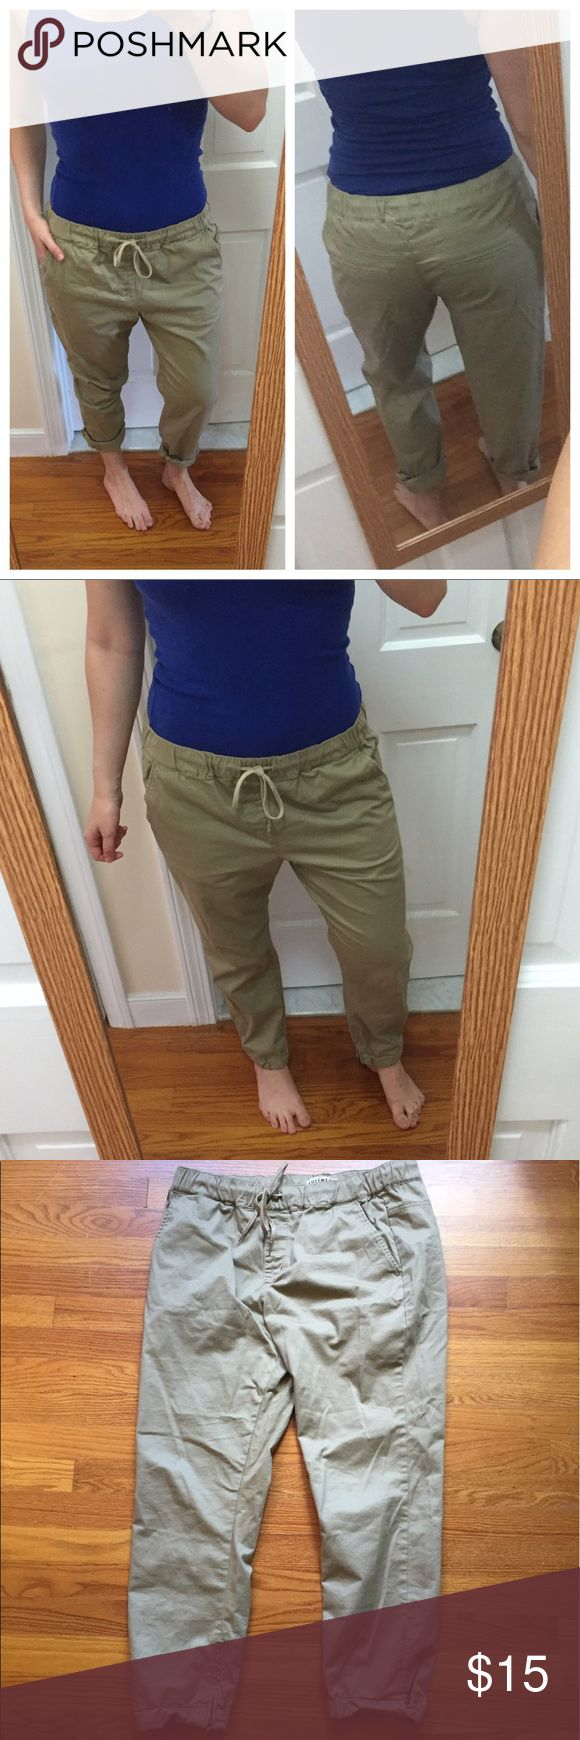 Khaki Joggers Excellent condition, only worn twice! A little too loose-fitting for my liking. Size L, best for sizes 8-12 depending on how you'd like them to fit. I'm a 6 and they are still wearable but loose. These are so versatile! Wear them rolled or unrolled at the ankles, tied high waisted or low waisted. Ankles have zippers and cuff buttons. Happy to answer any questions! Bullhead Pants Track Pants & Joggers